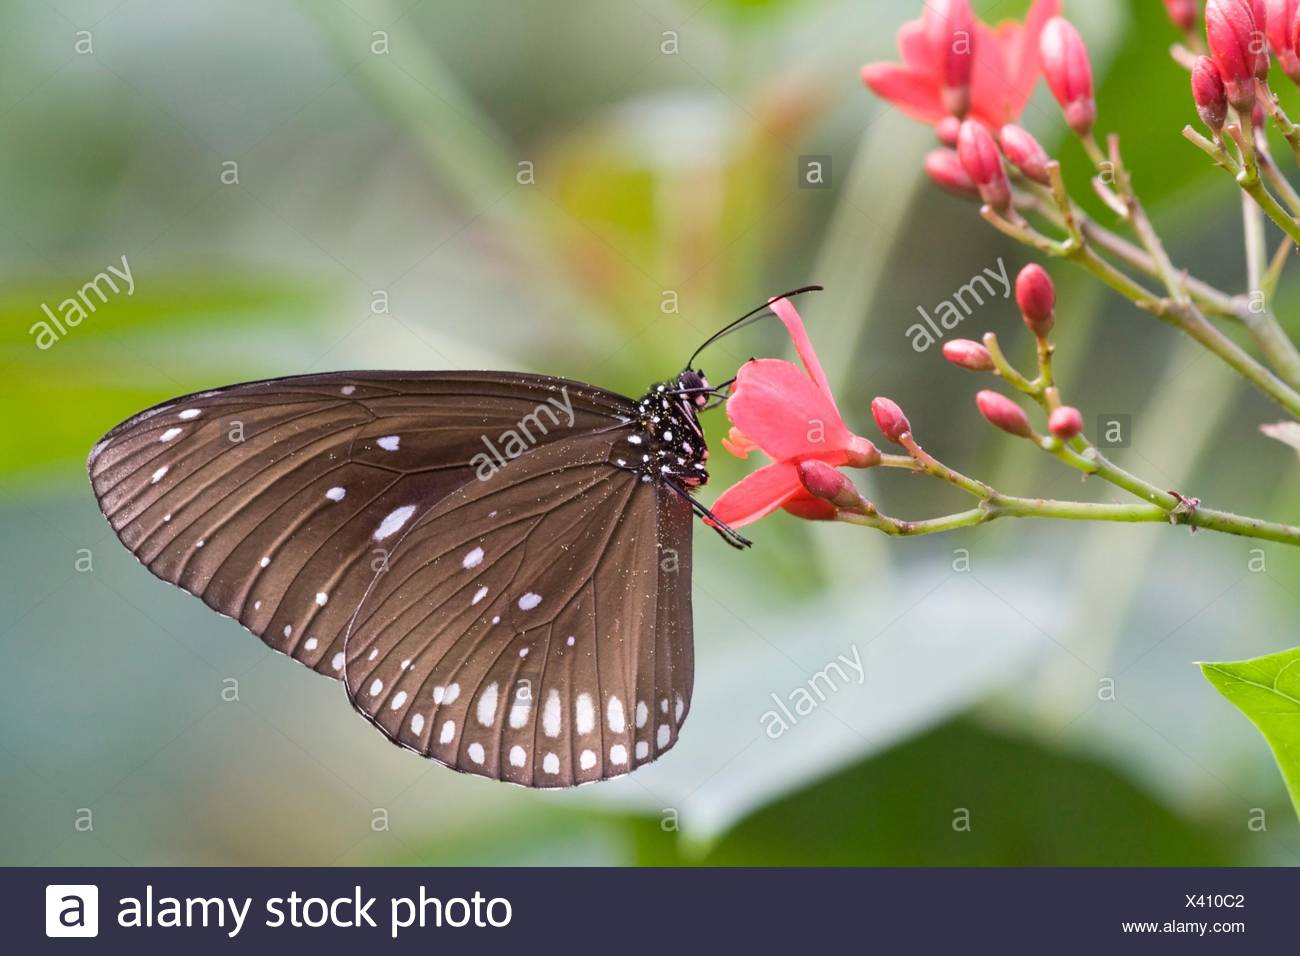 Euploea core sits on a flower in a zoo, Netherlands. - Stock Image